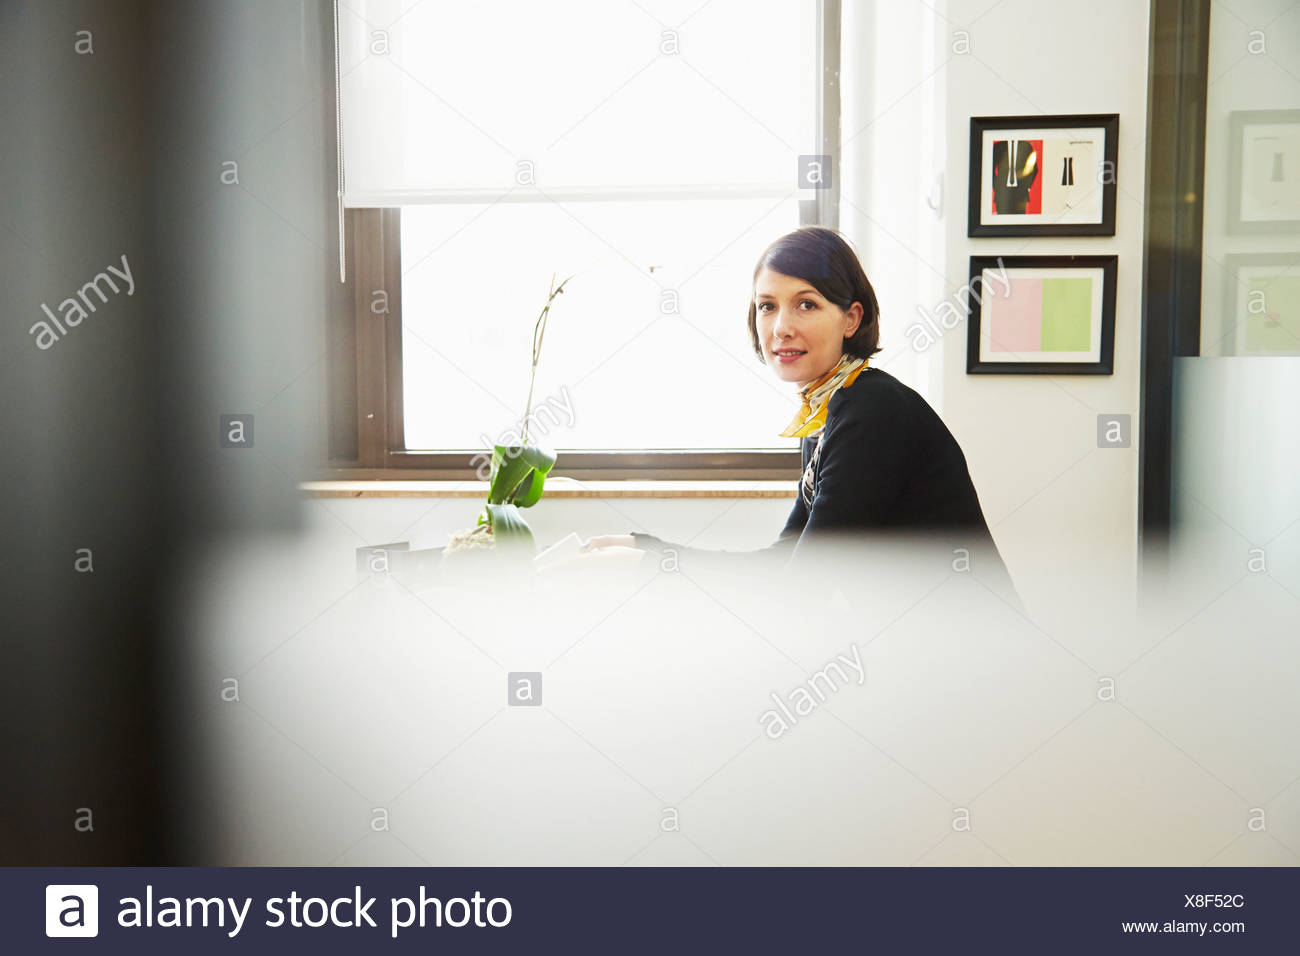 Businesswoman in office Photo Stock